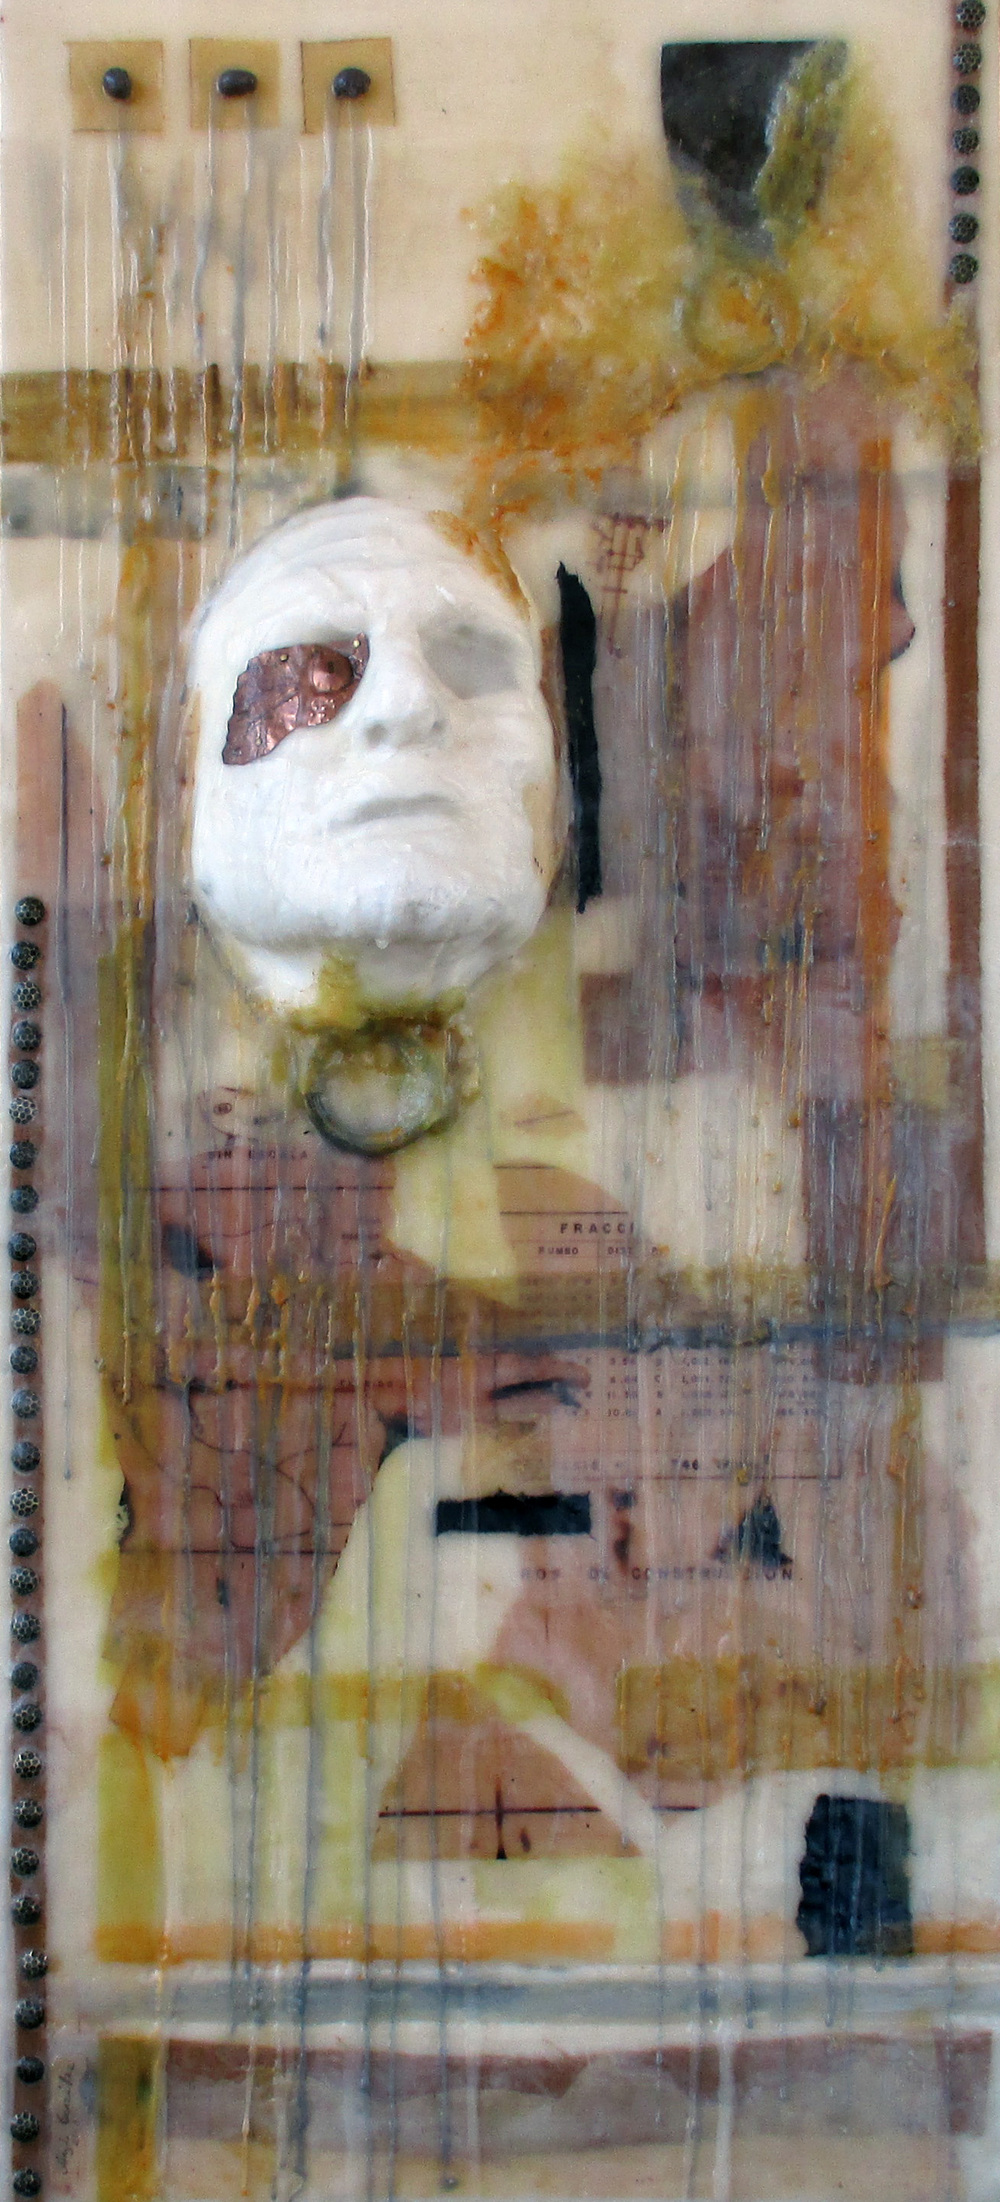 Angela Gonzalez.  ARQUISTA.  36 x 16 inches.  Bees wax, cloth, paper, metal on wood..jpg